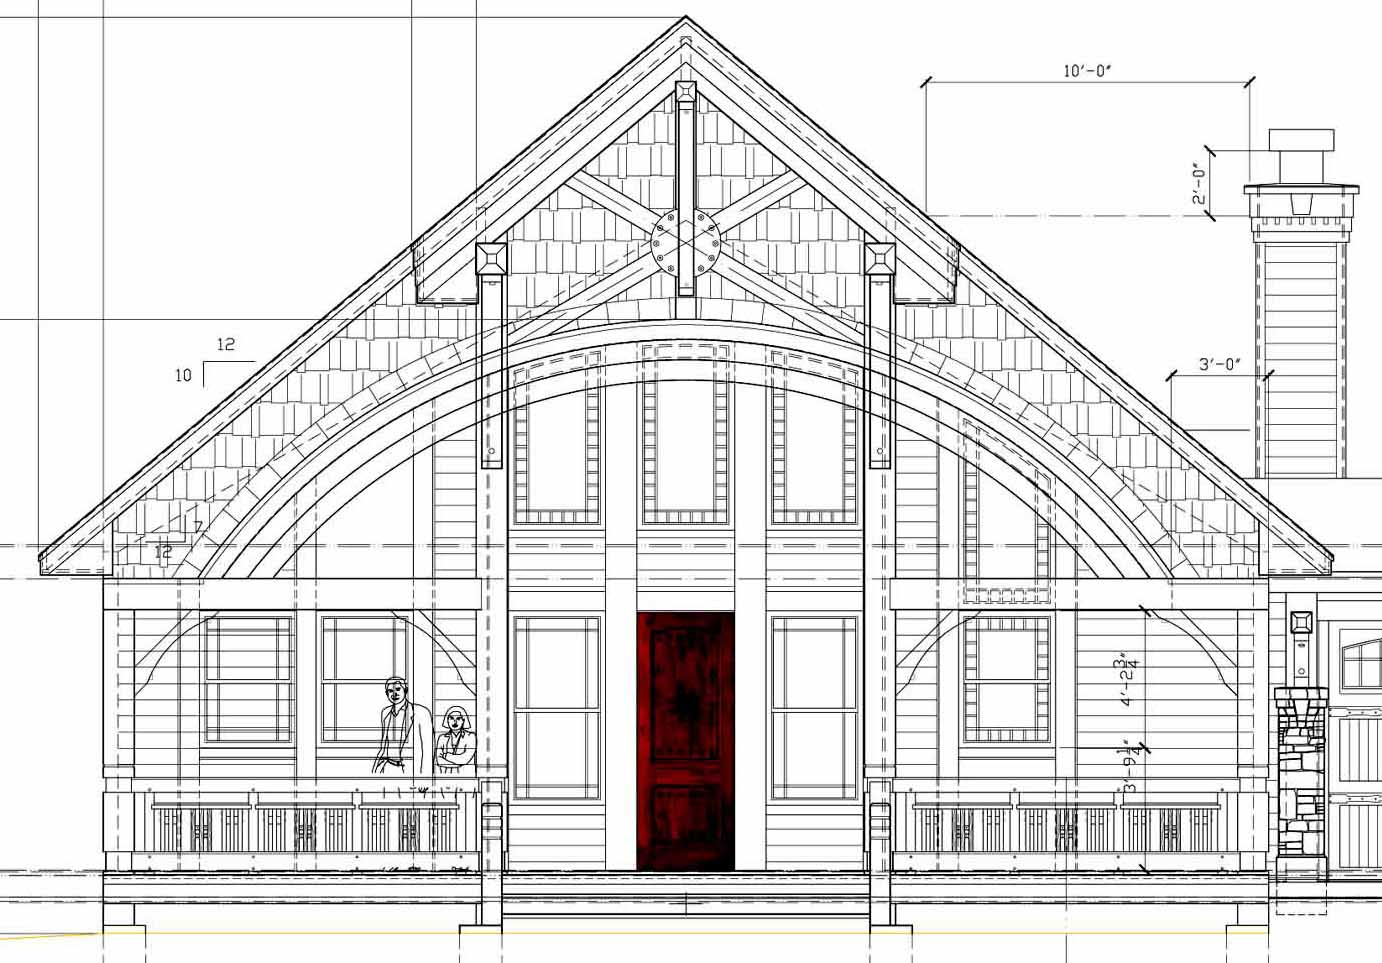 Free Gable Shed Plans Part2 as well Index php also What Are The Different Types Of Wood Joints in addition US20130055656 likewise Rafter Cuts. on roof framing basics